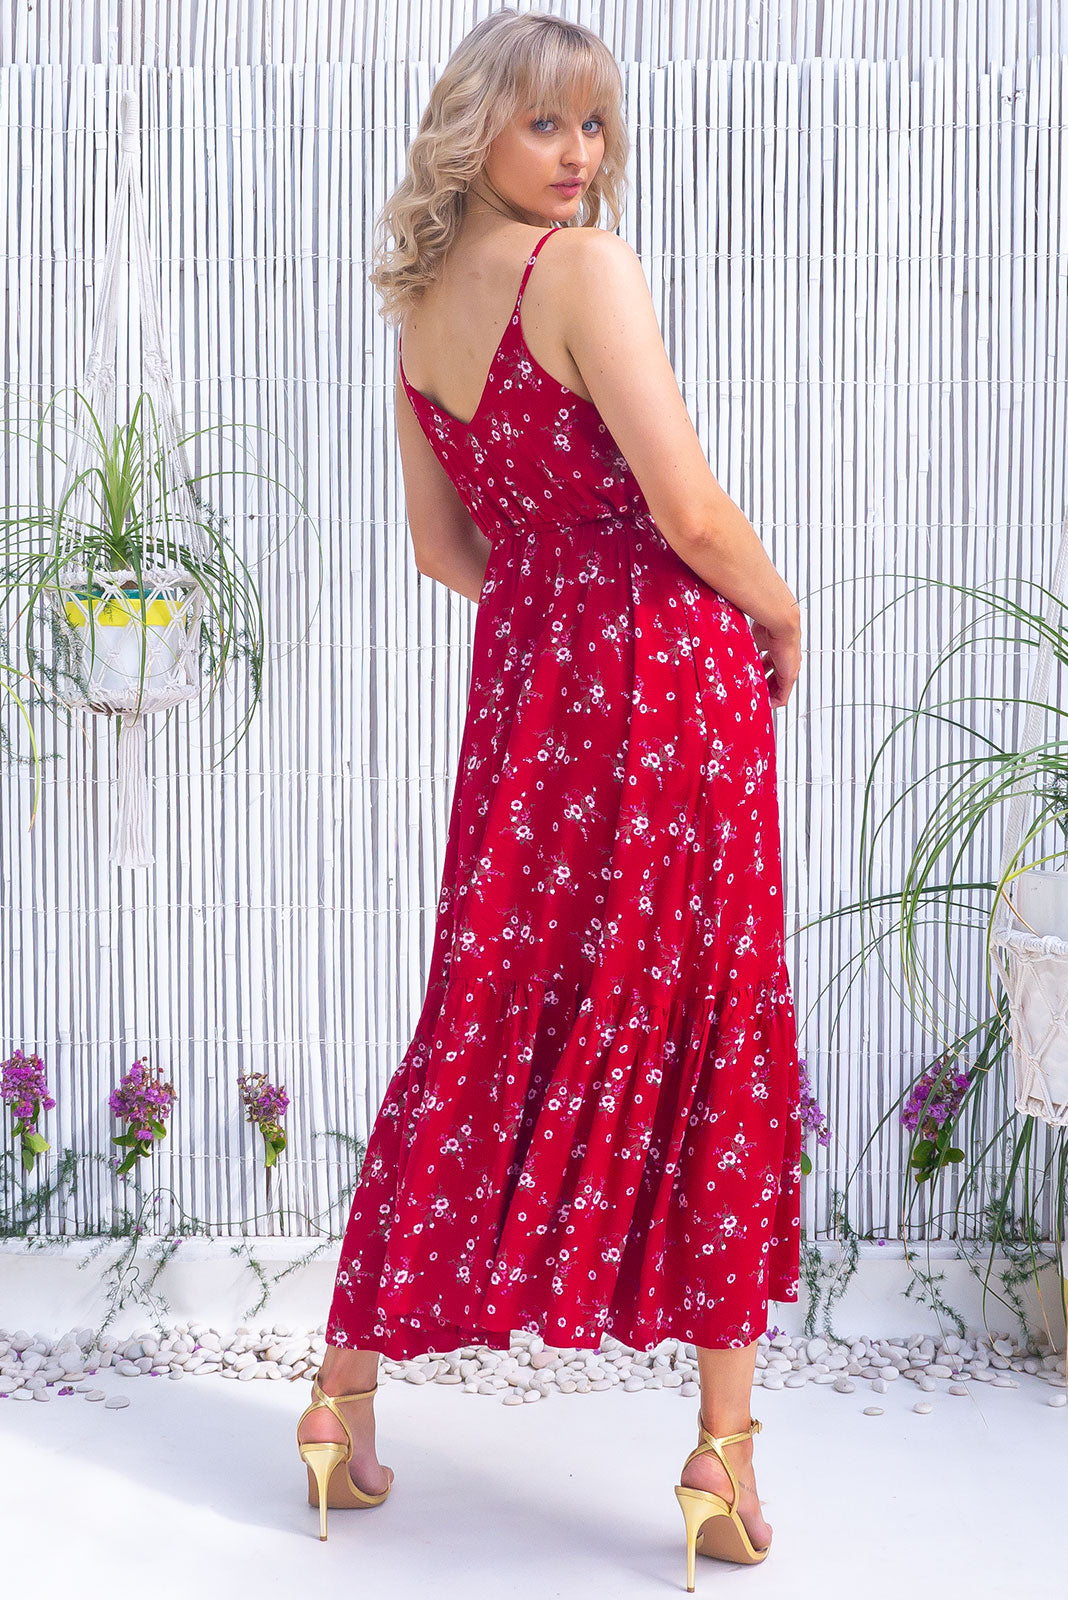 The Adoro Cherry Red Maxi Dress features bust area lined, V neck and back, drawstring under bust, thin straps, side pockets, frill at base of skirt and 100% rayon in rich red base scattered with a sweet, little floral print.